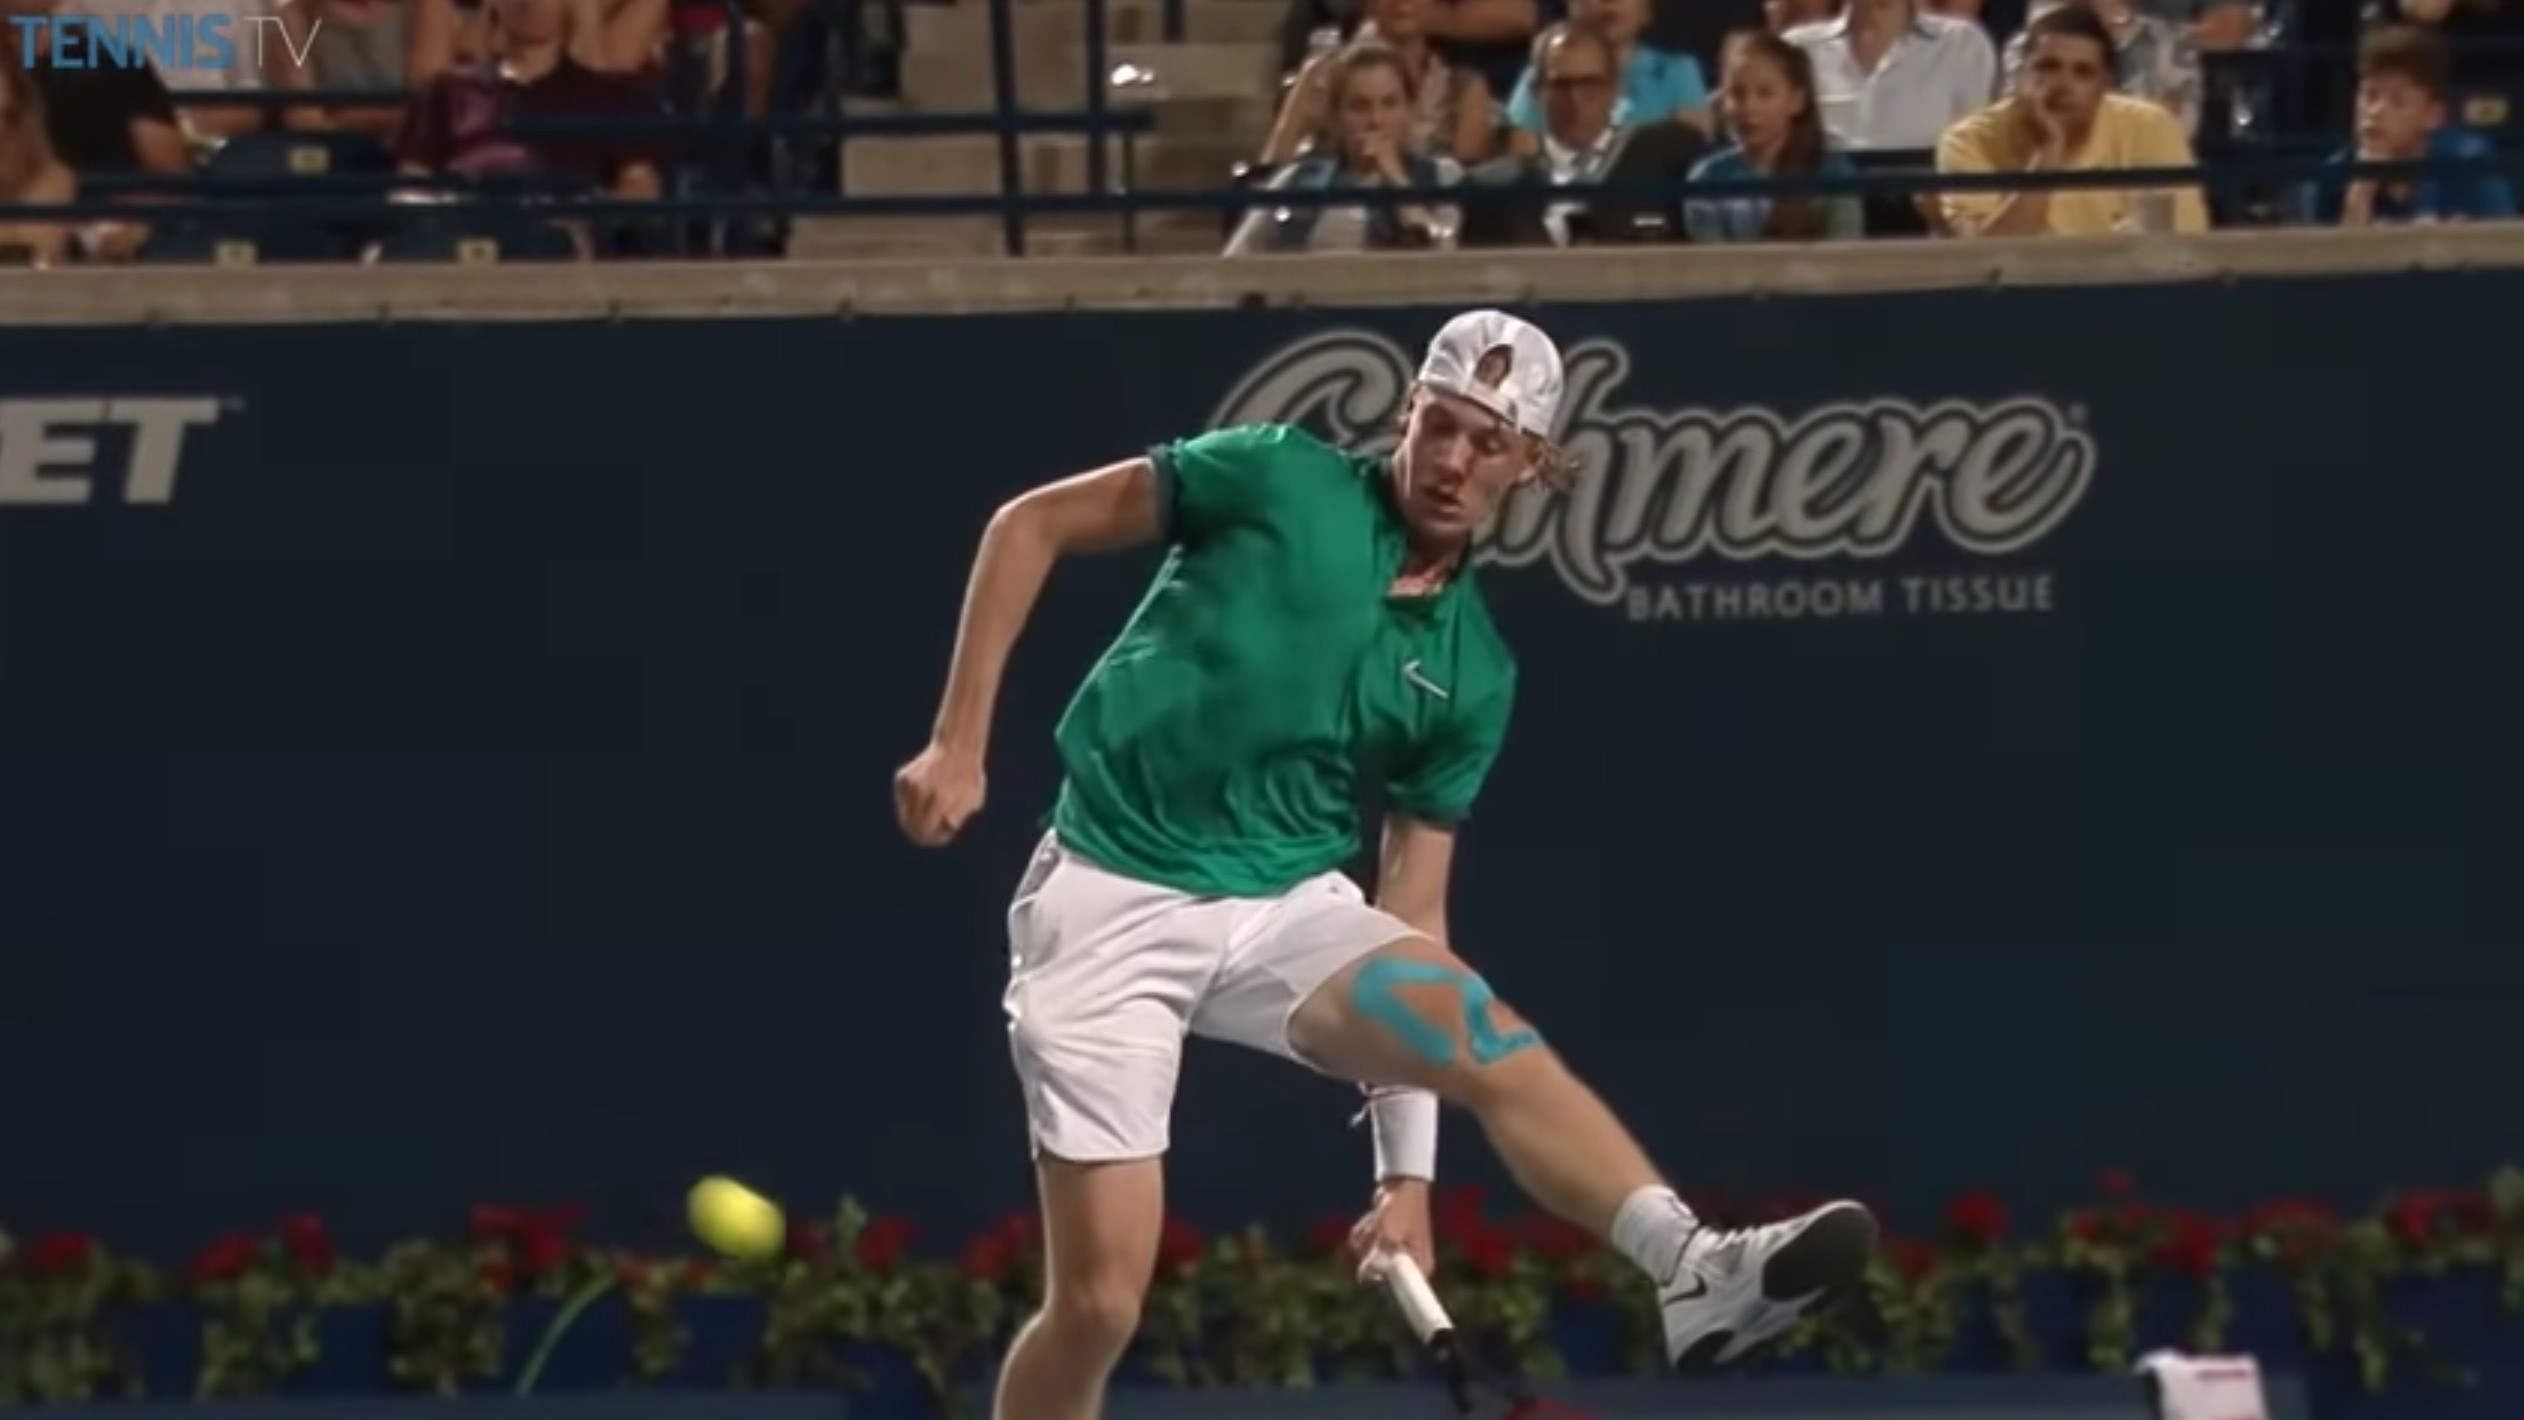 Young Canadian Tennis Player Makes Incredible Between-the-Legs Shot